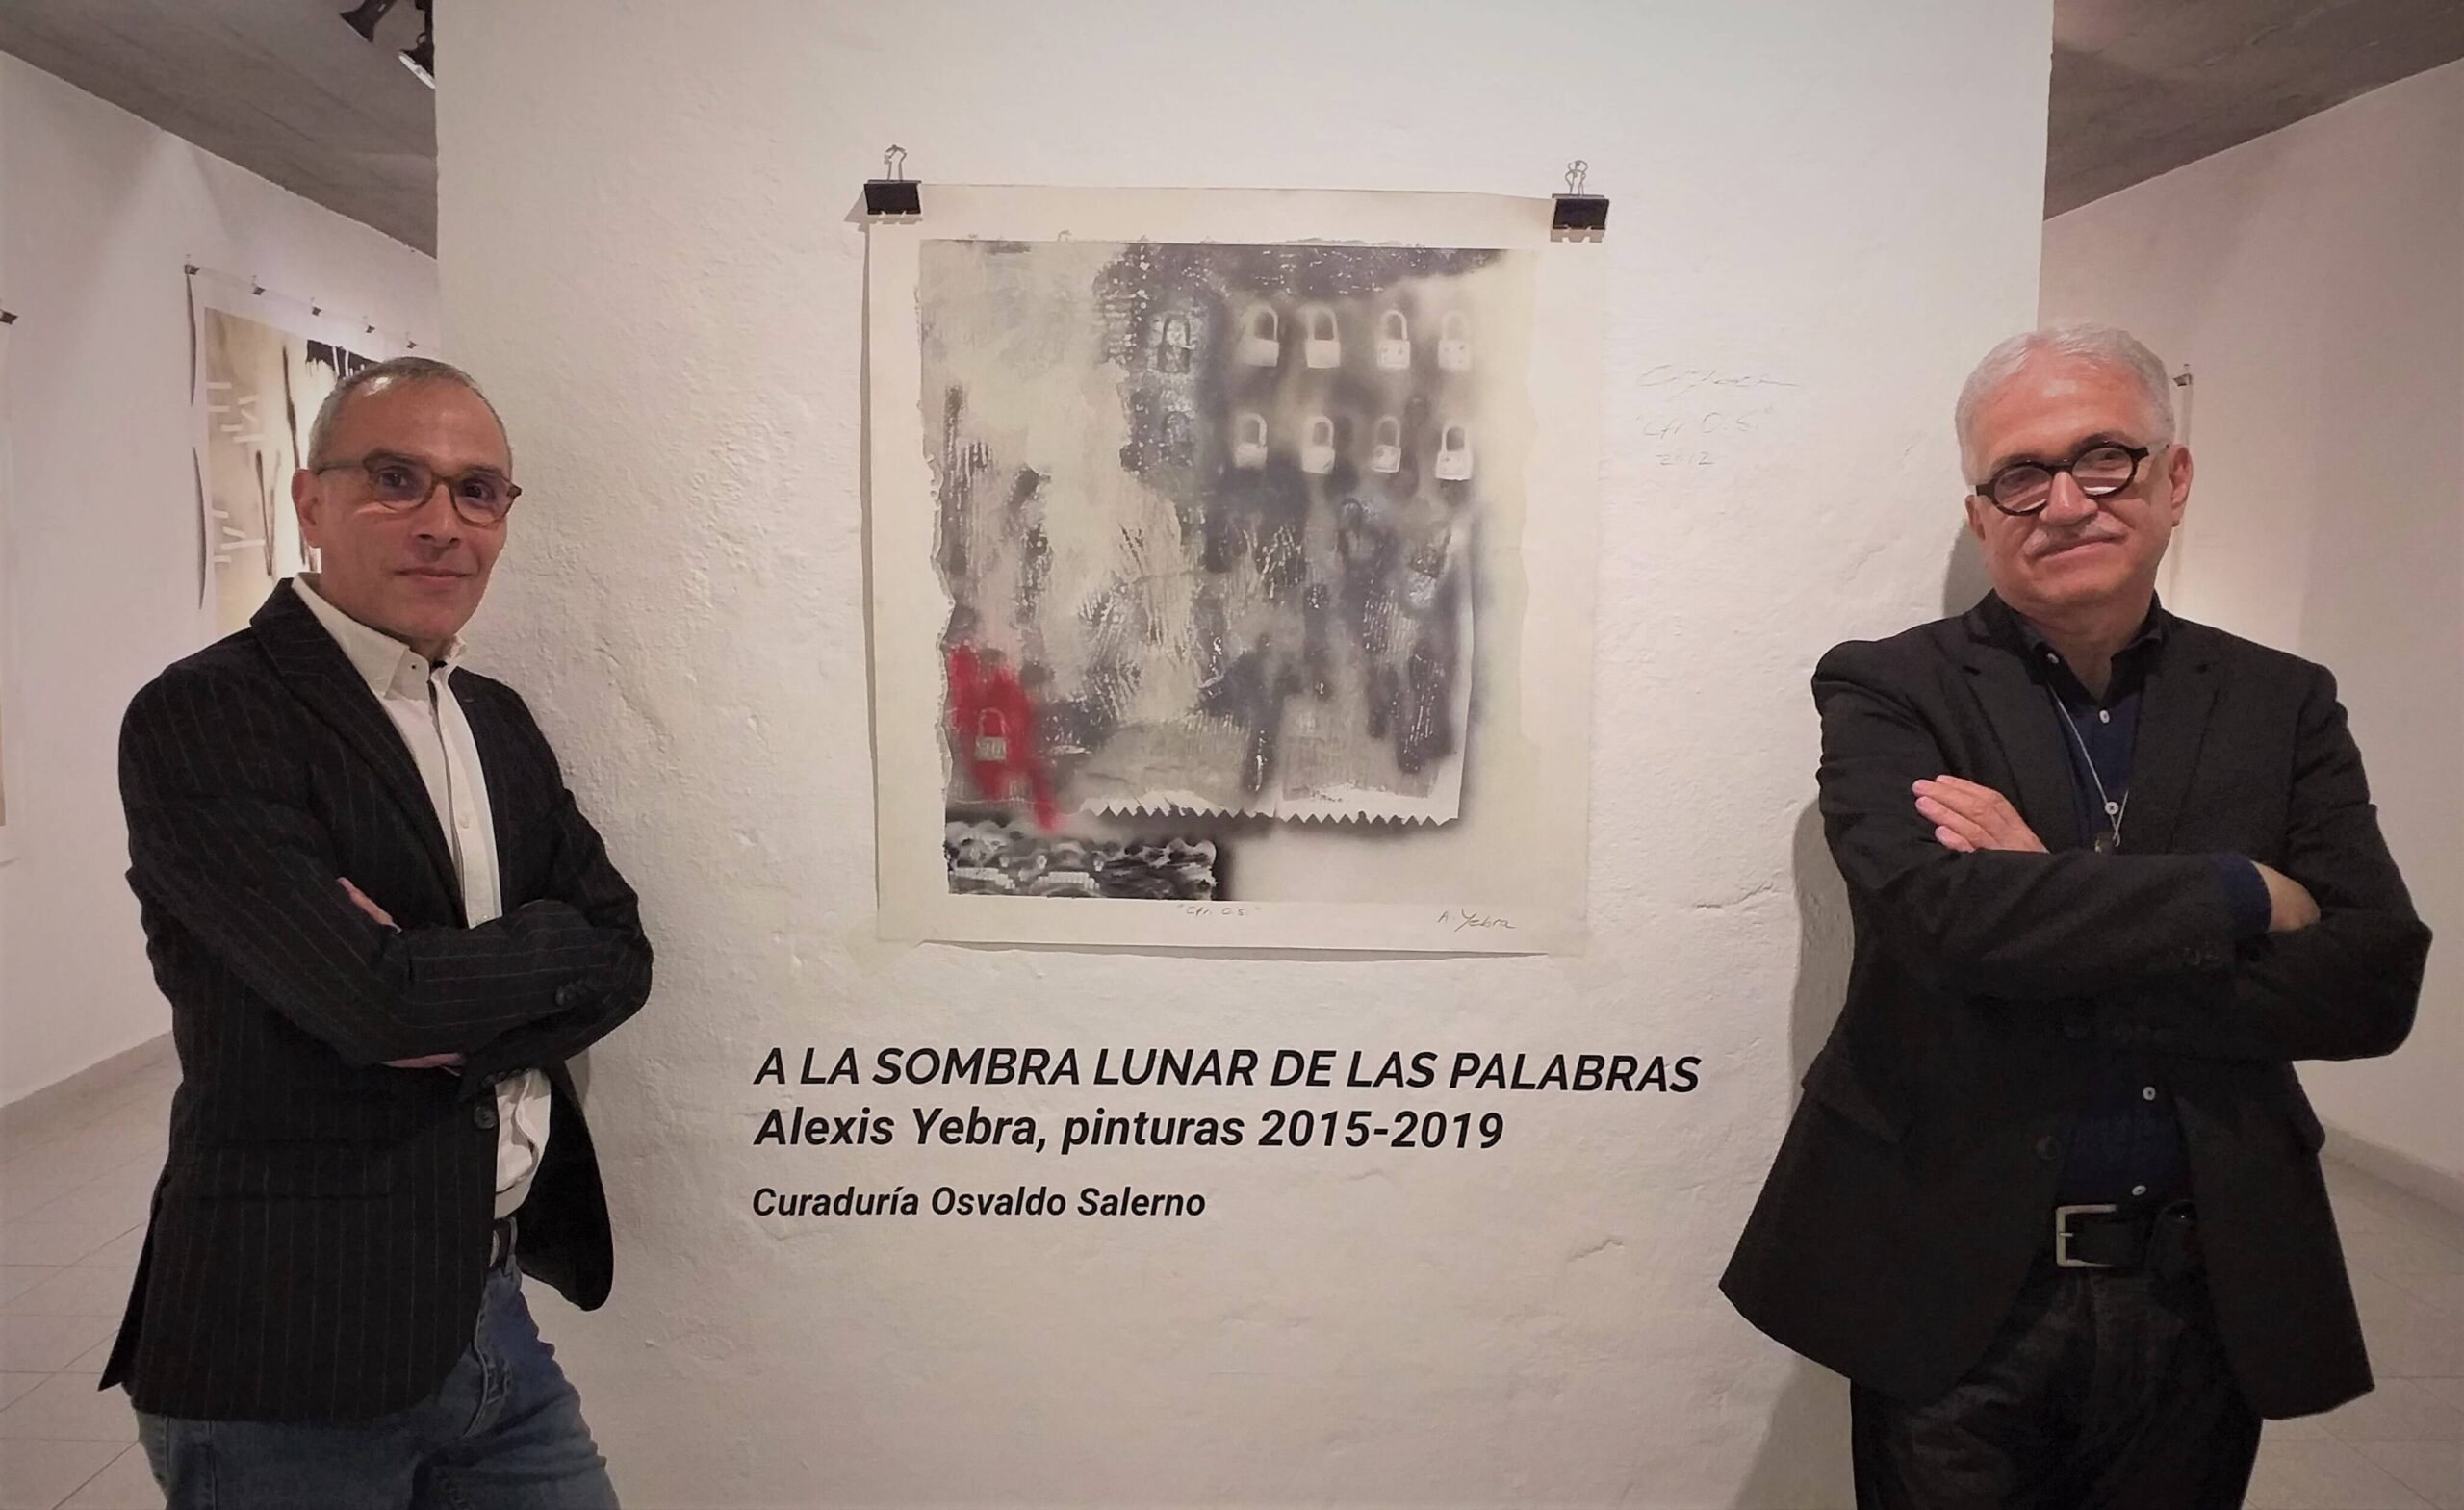 Osvaldo Salerno, curator of the exhibition, and Alexis Yebra